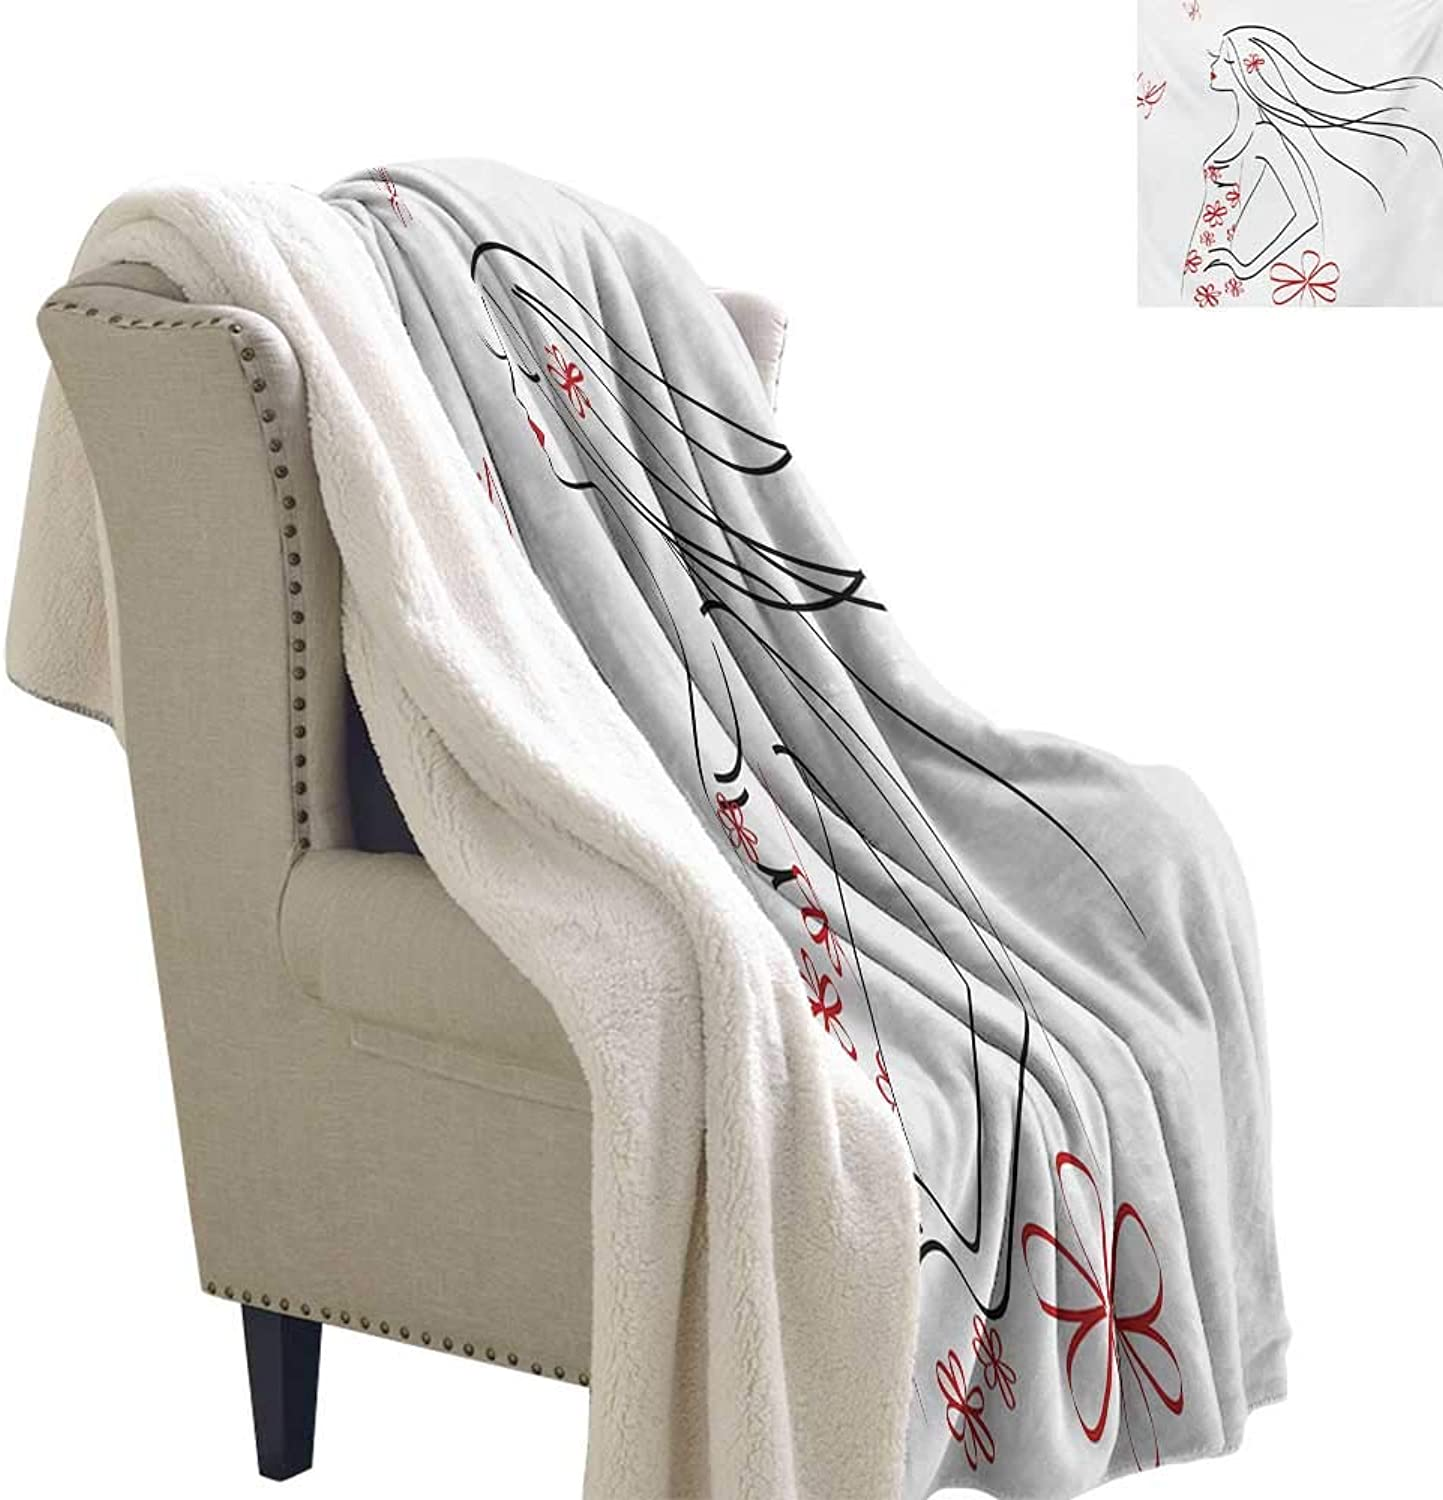 Sunnyhome Girls Throw Blanket 60x32 Inch Young Girl in Dress with Flower Ornamentals Butterfly Blowing Hair Art Soft Premium Cotton Thermal Blanket Charcoal Grey Vermilion